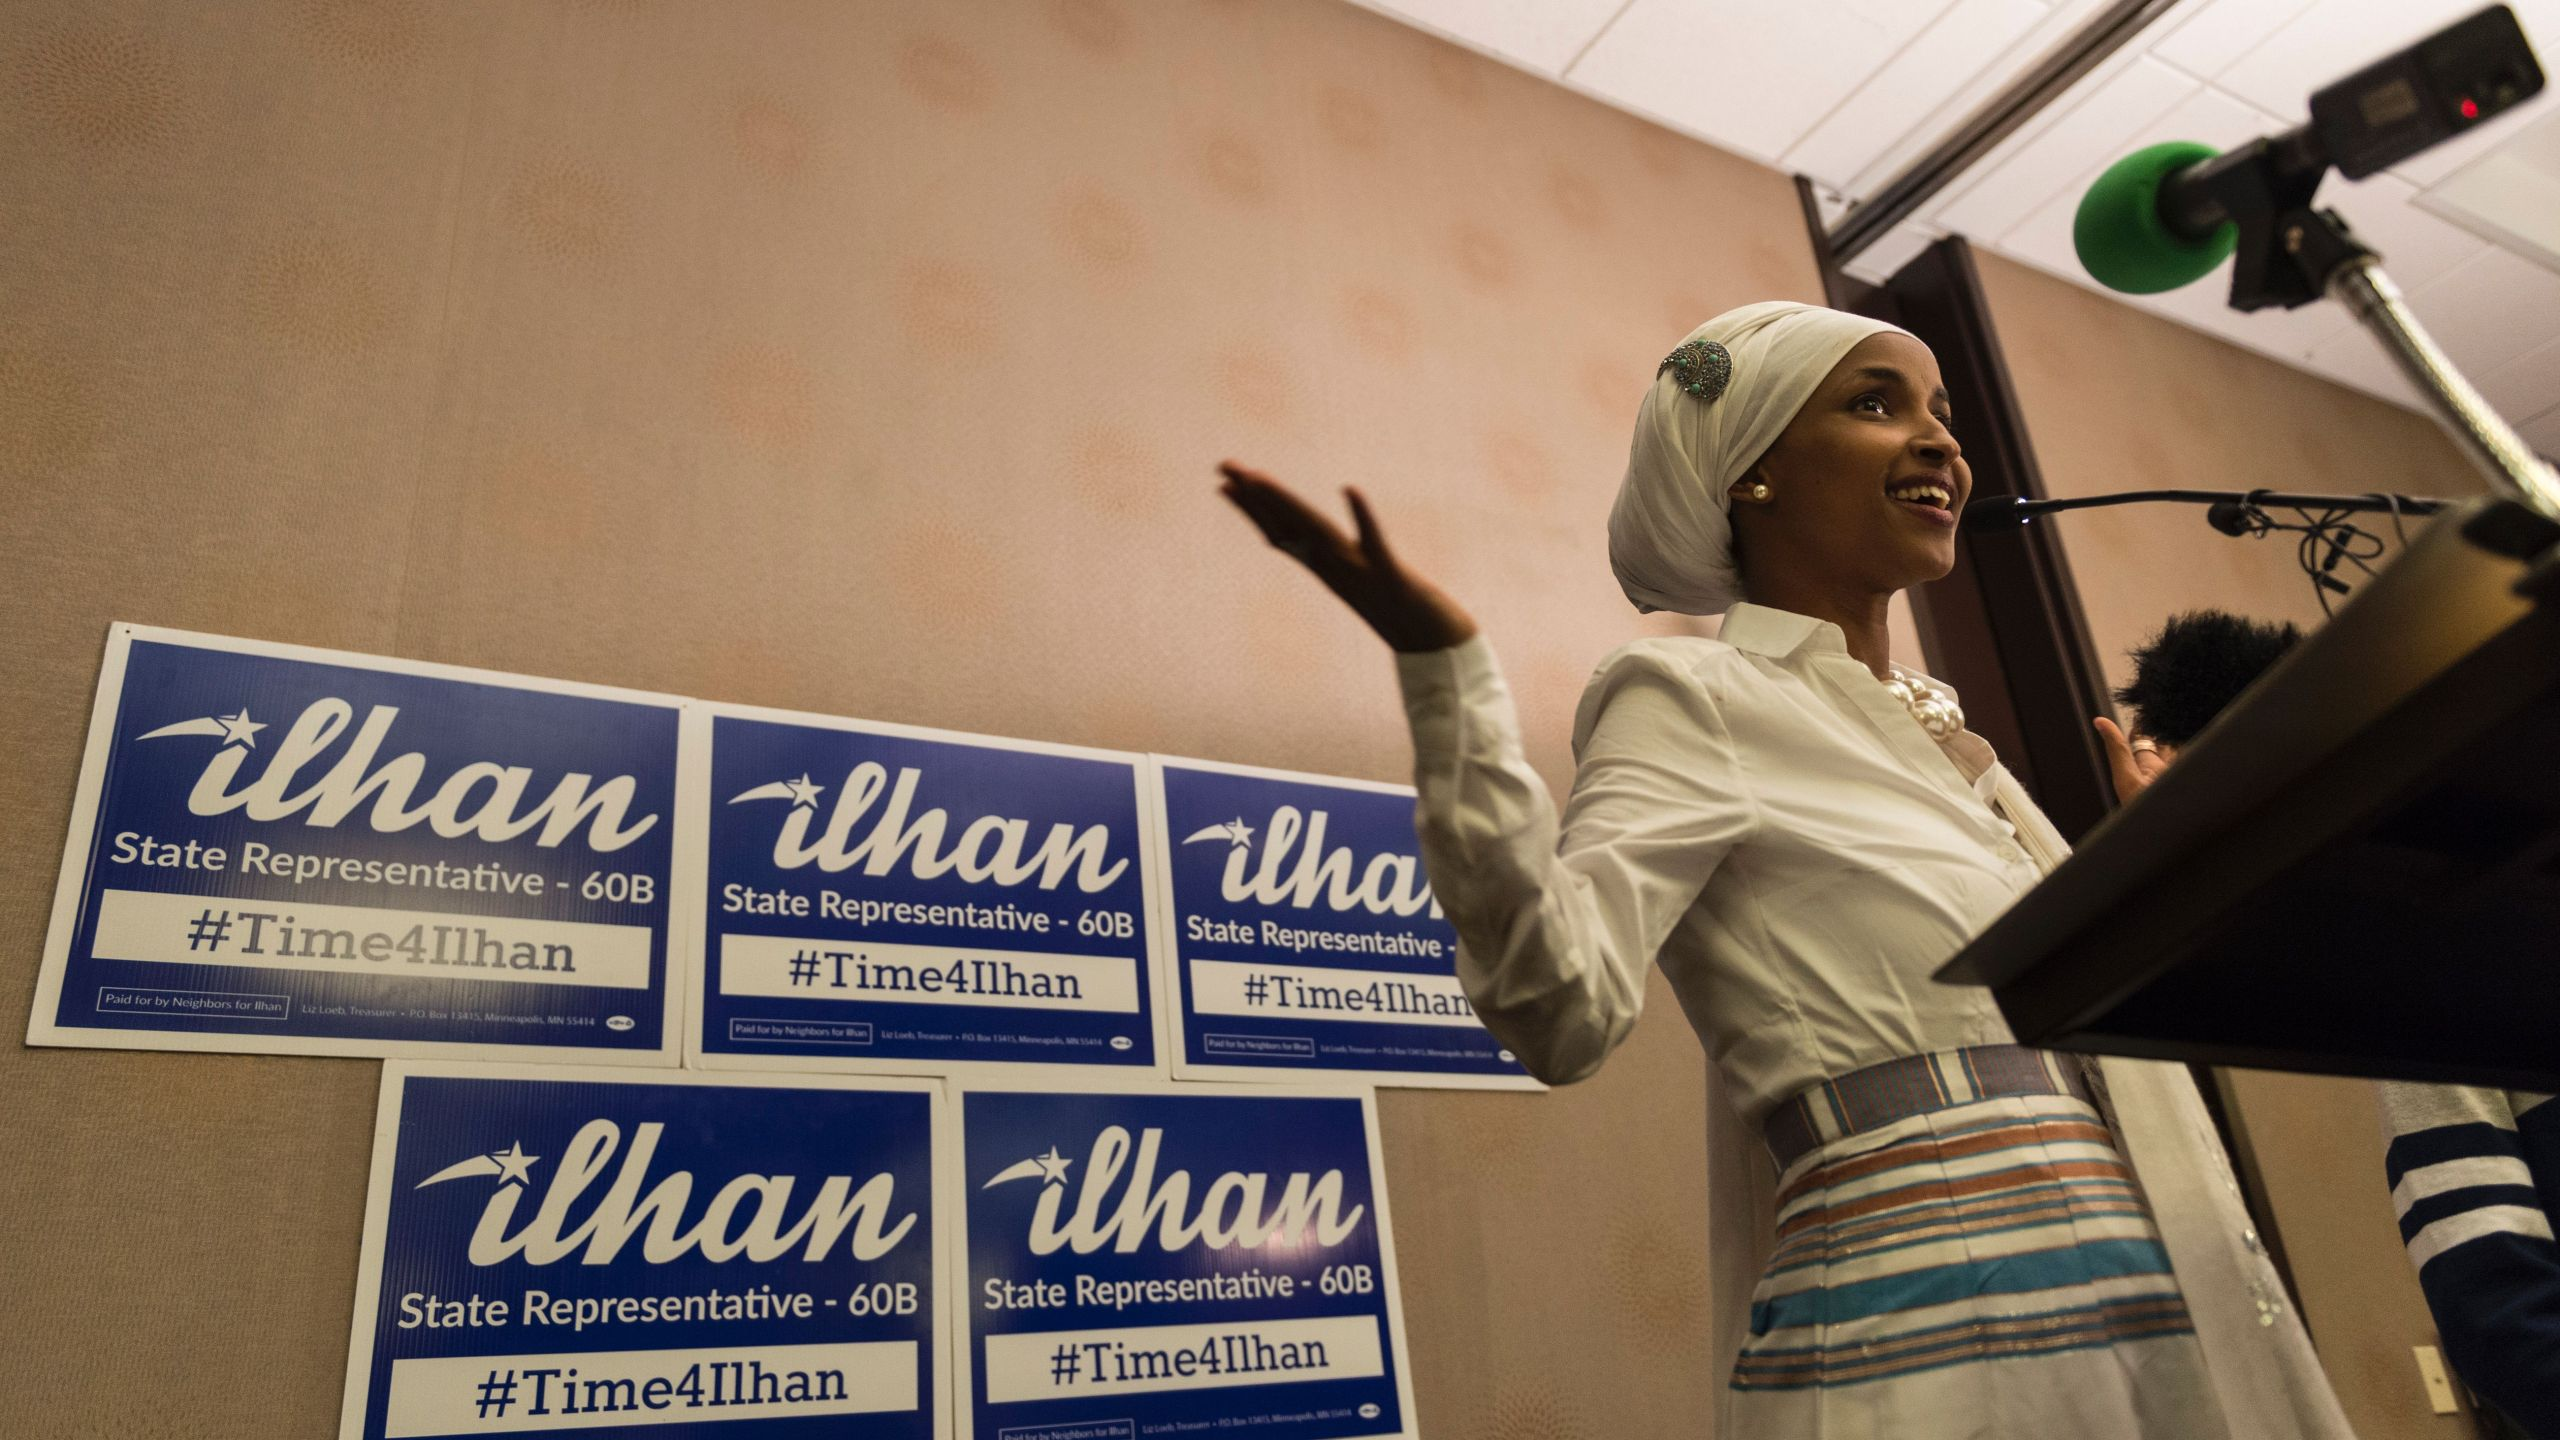 Ilhan Omar, candidate for State Representative for District 60B in Minnesota, gives an acceptance speech on election night, Nov. 8, 2016, in Minneapolis, Minnesota. Omar, a refugee from Somalia, is the first Somali-American Muslim woman to hold public office. (Credit: STEPHEN MATUREN/AFP/Getty Images)